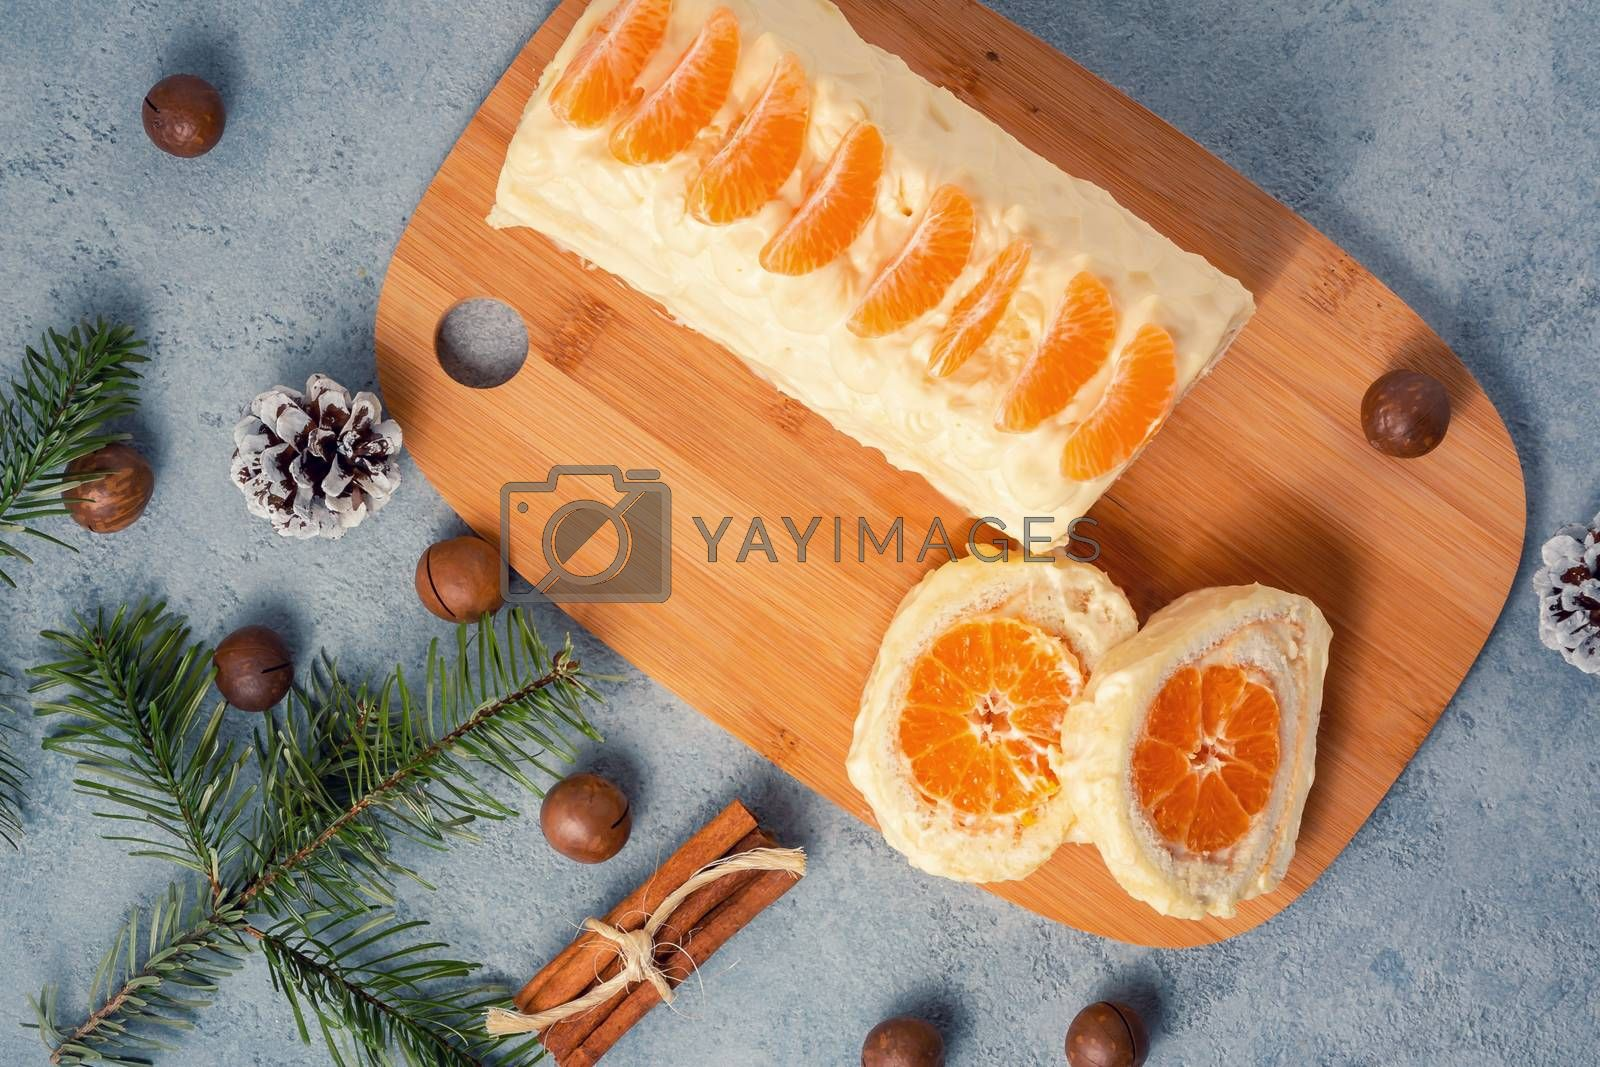 Sweet roll with whipped cream and tangerine filling and Christmas decorations by galsand